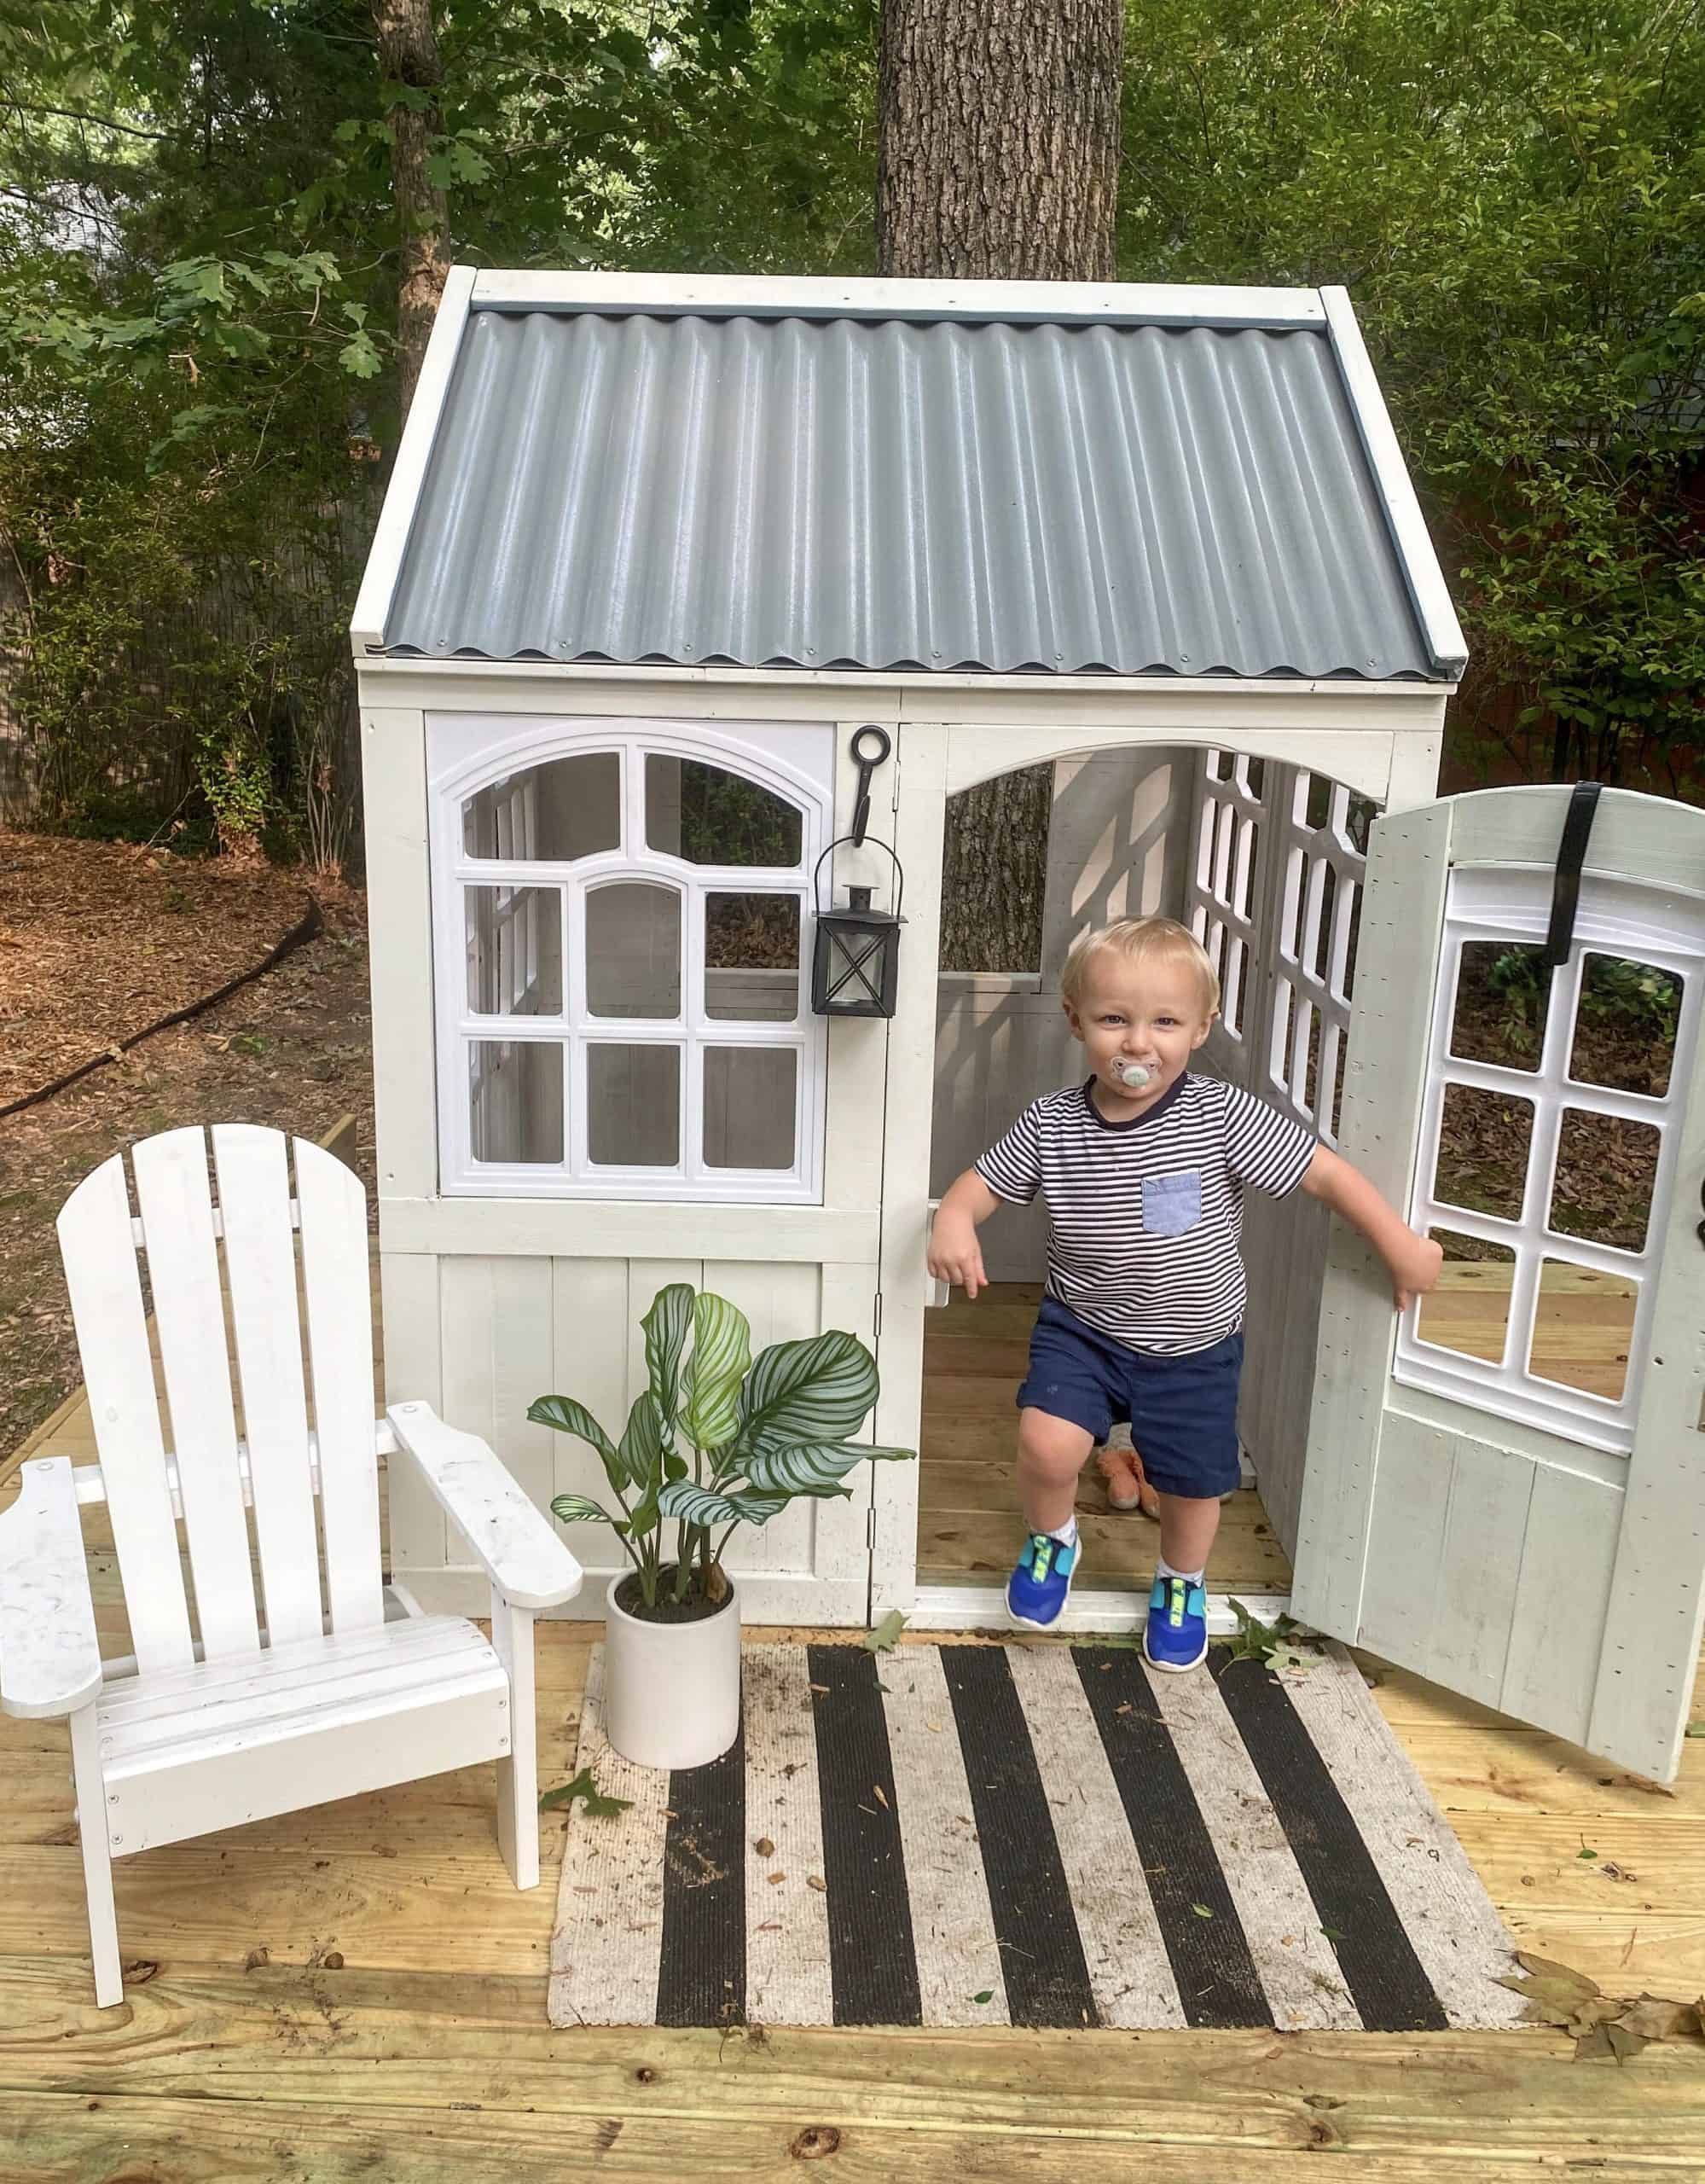 Bath and Bedtime Routine with Aveeno® Baby featured by top Michigan lifestyle blogger, The House of Navy: little boy and playhouse makeover | Aveeno Baby by popular Michigan motherhood blog, House of Navy: image of a  young boy playing in an outdoor playhouse.